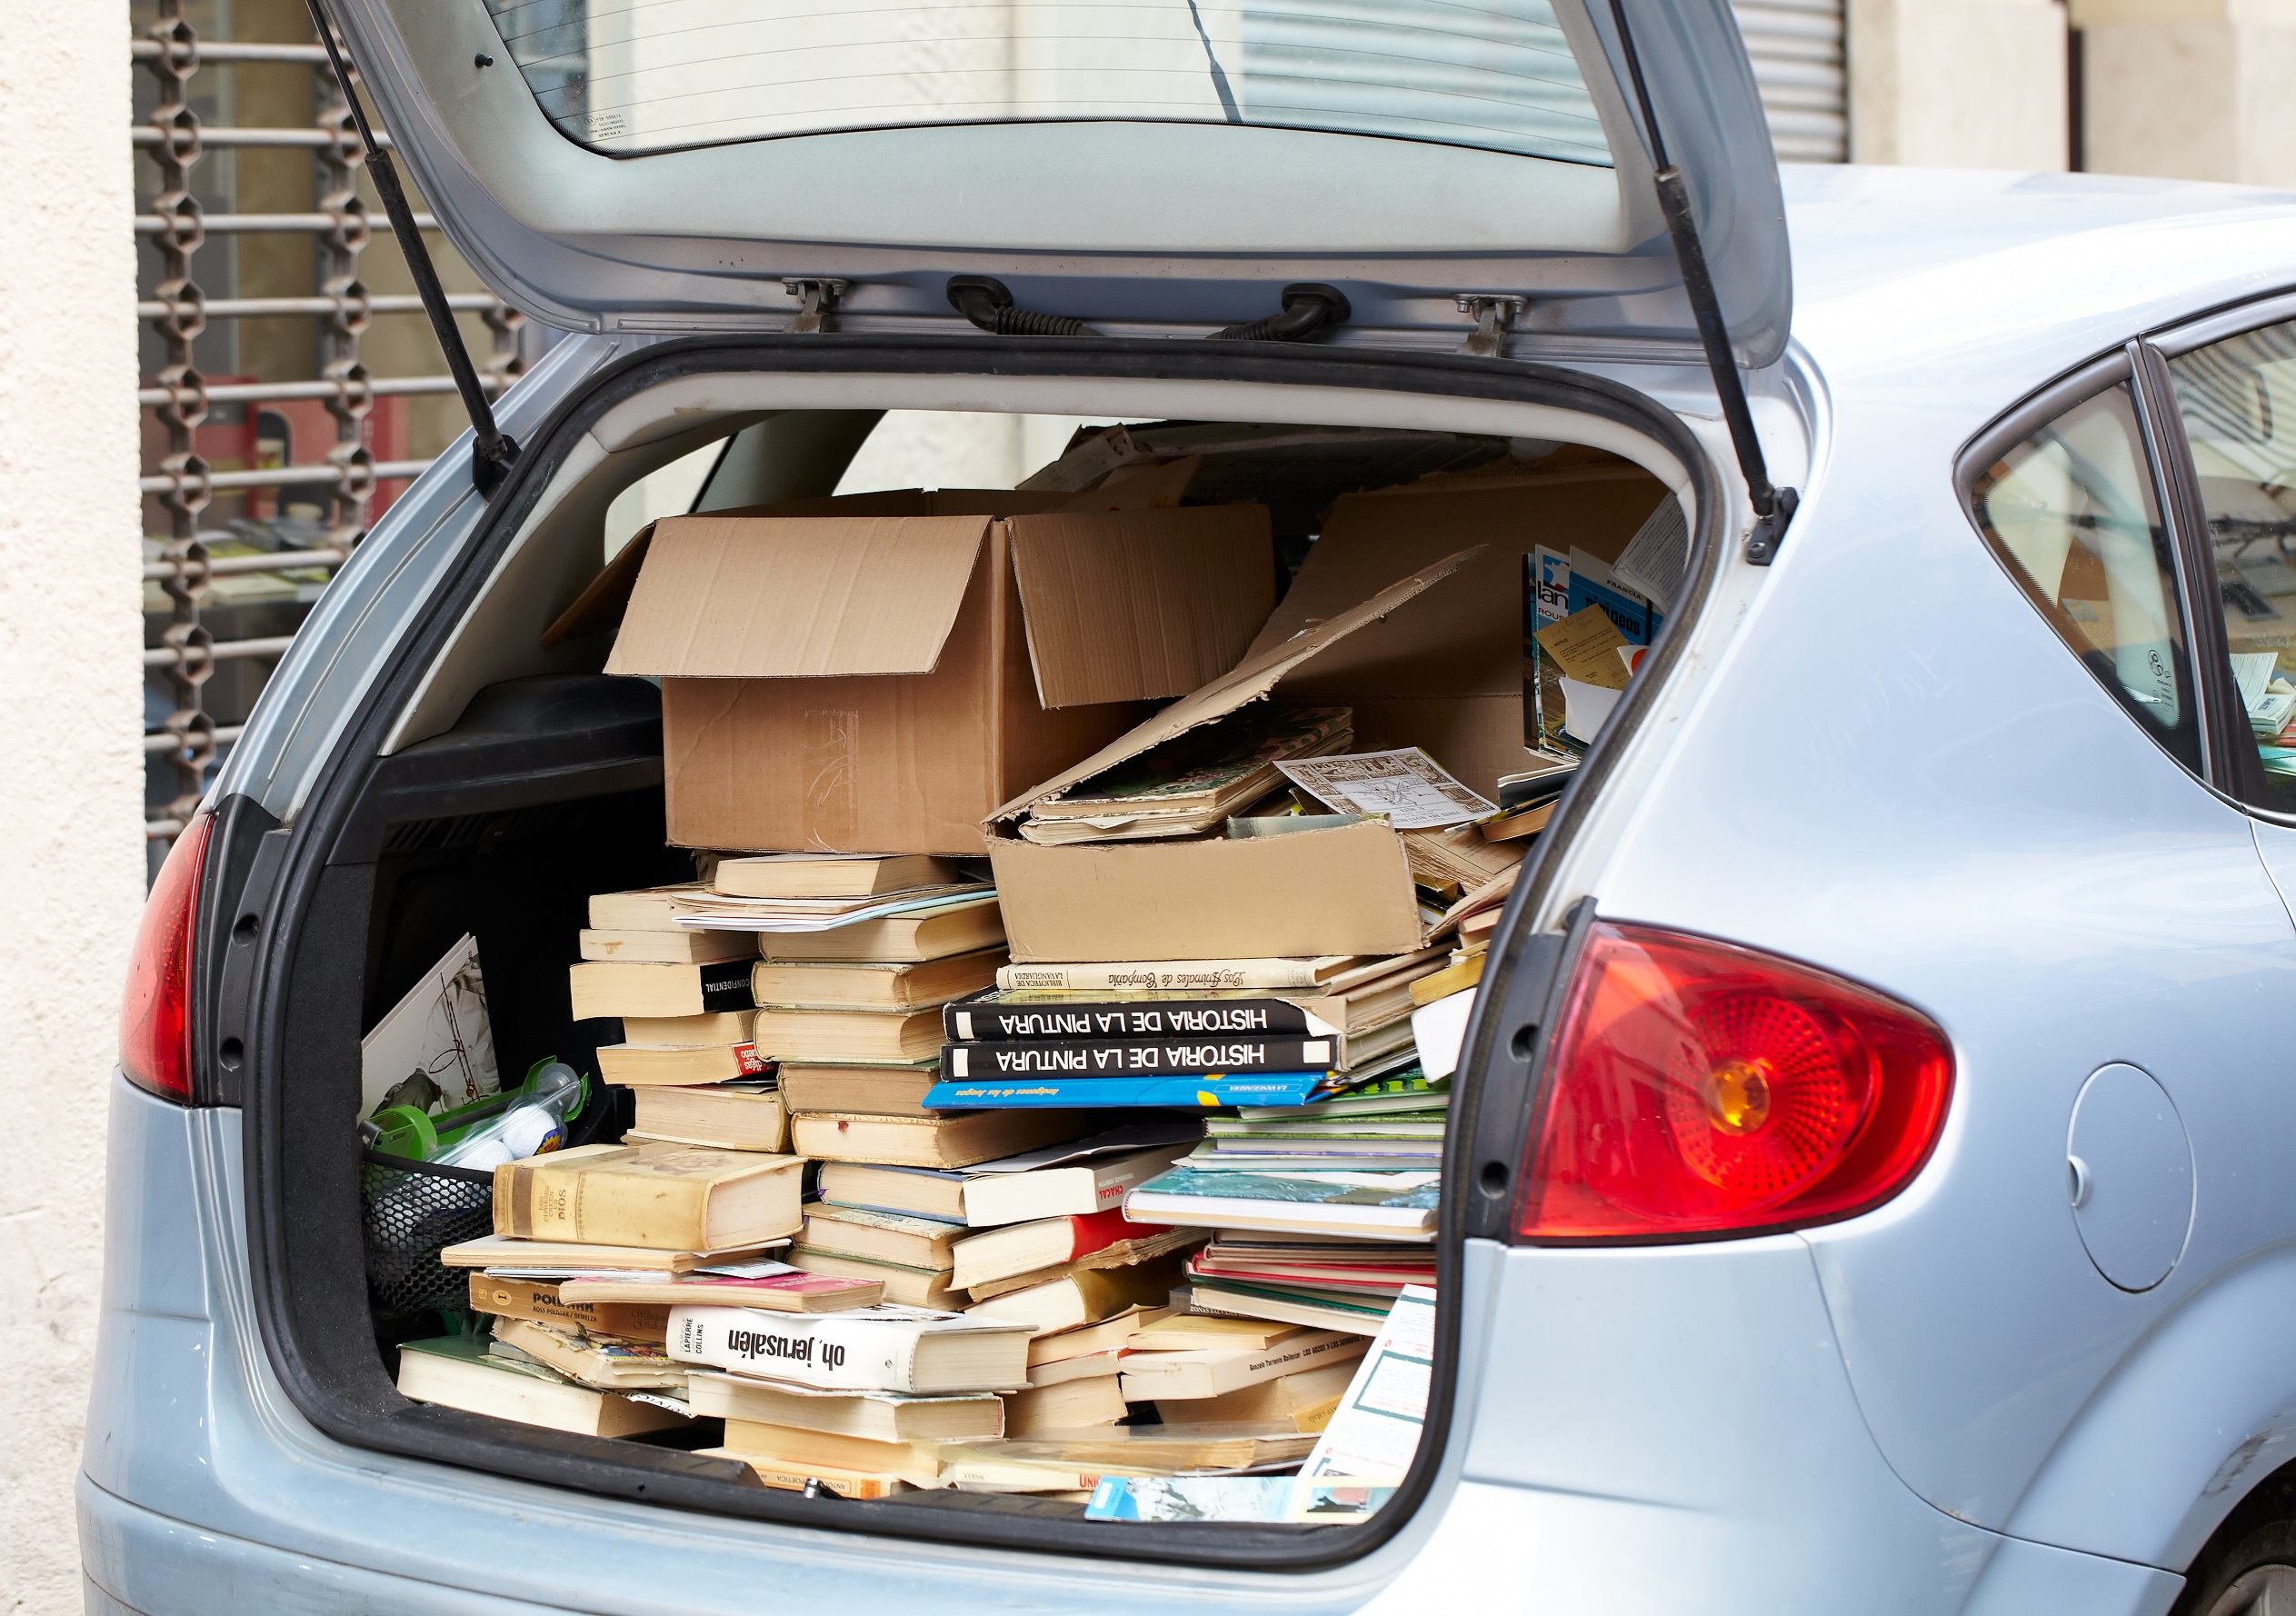 Overloaded car that needs cleaning